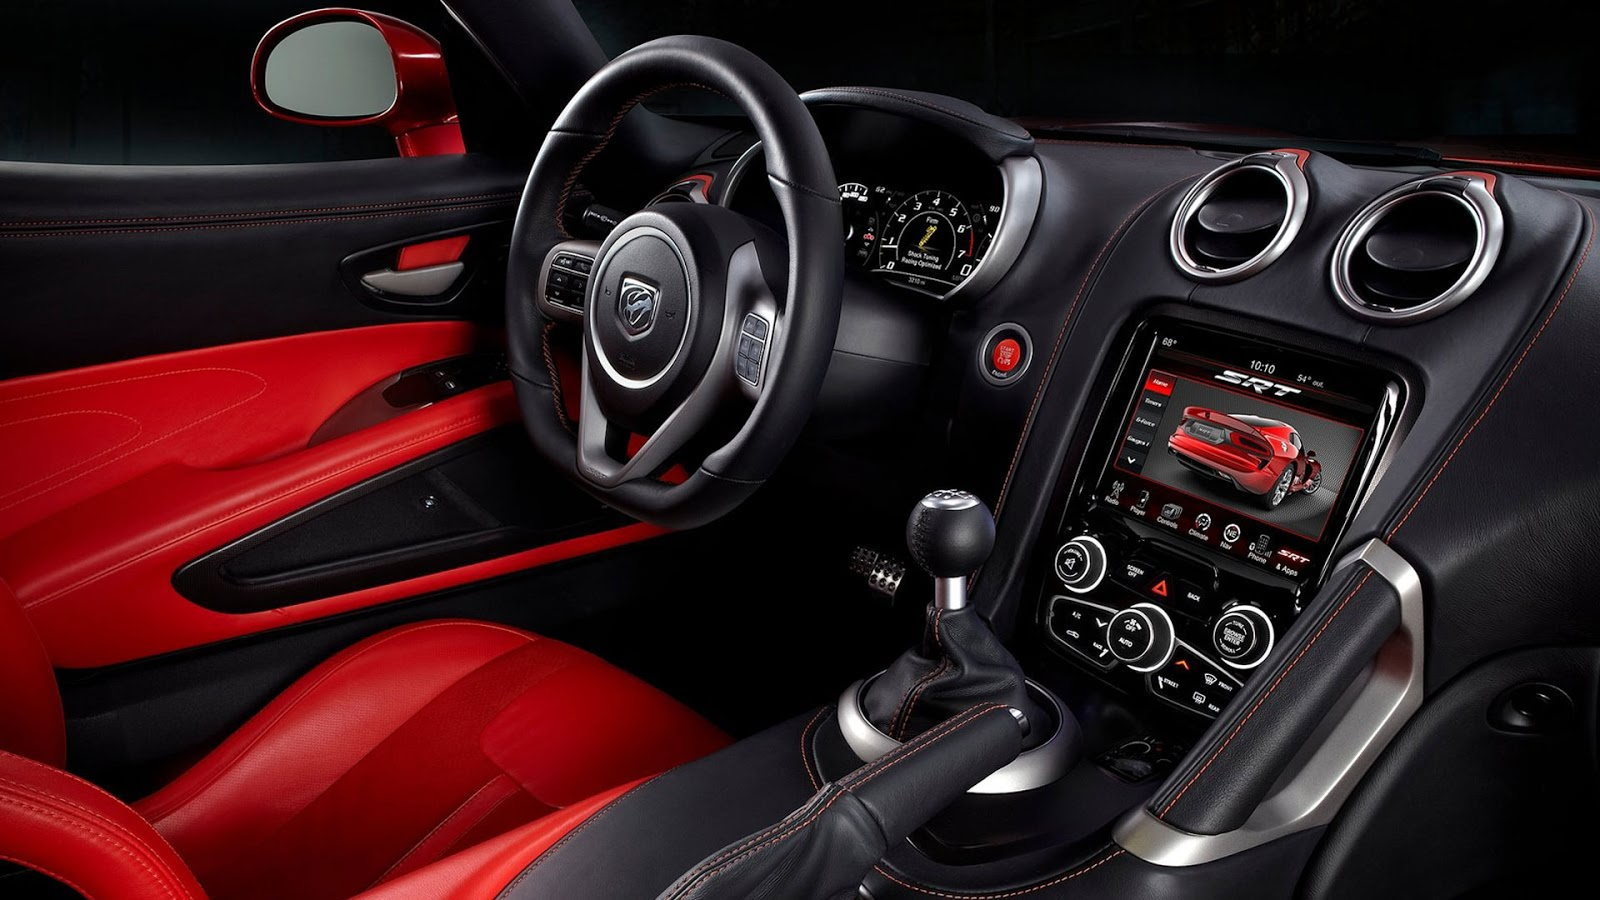 2013 dodge srt viper gts wallpapers images pictures interiors and exteriors infinity cars 2 u. Black Bedroom Furniture Sets. Home Design Ideas